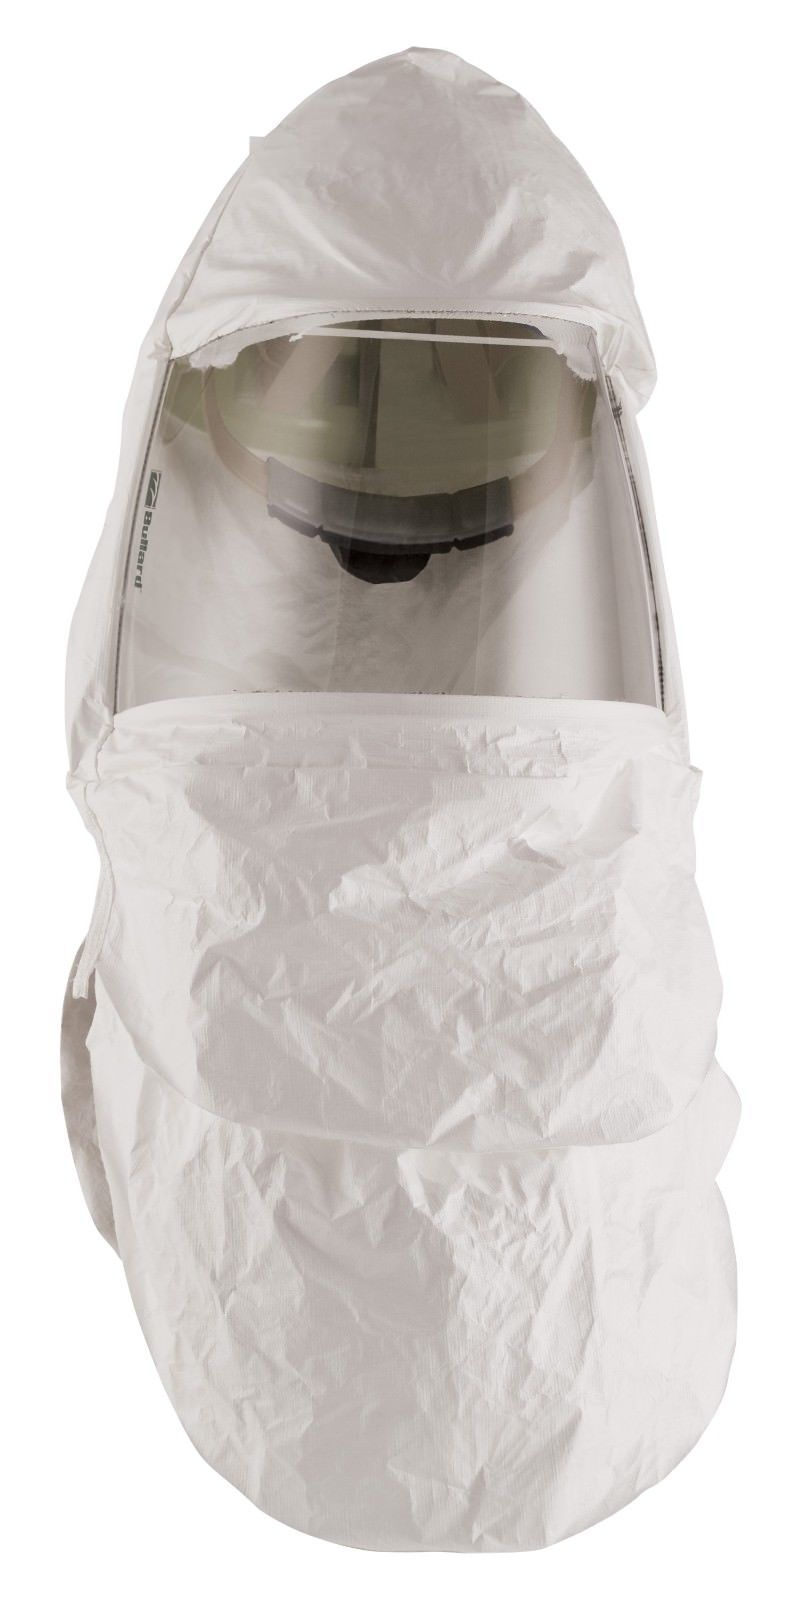 Bullard® 20TIC Double Bib Respirator Hood With Headband and Suspension, For Use With CC20 Series Supplied Air Respirator and EVA, EVAHL, PA20, PA30 or PA30IS Series Powered Air Respirator, White